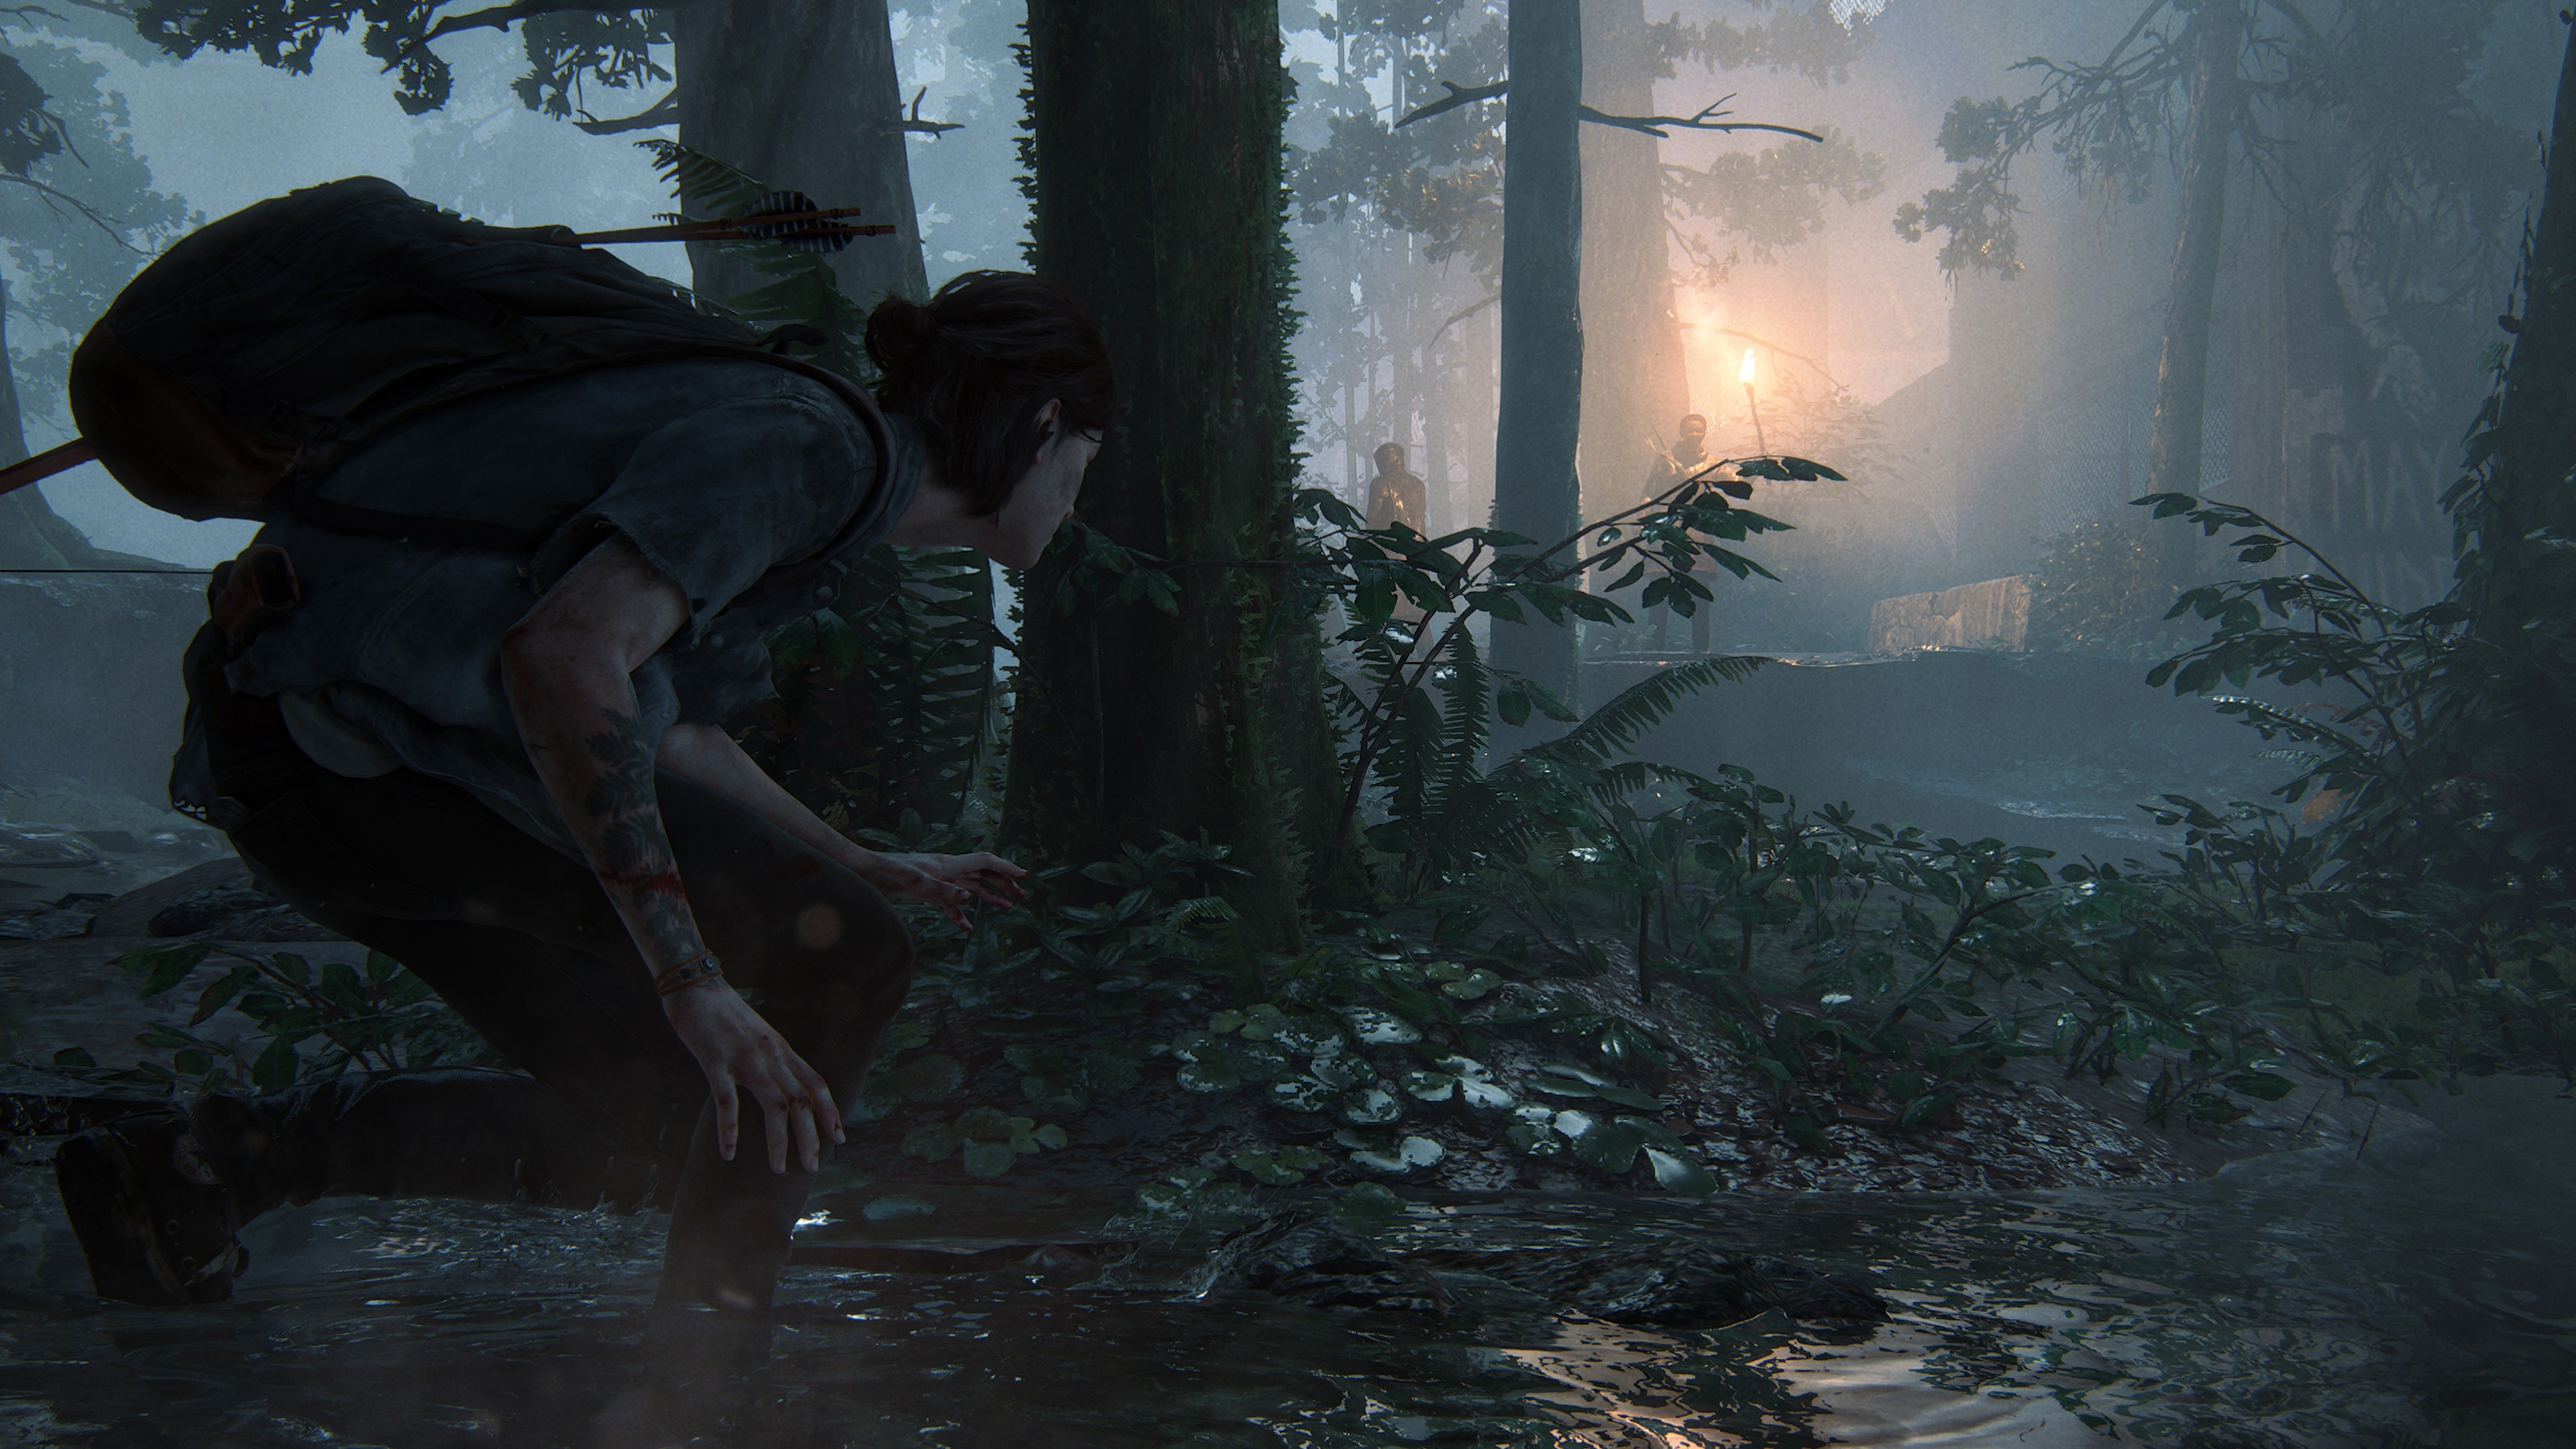 Free Download Wallpaper The Last Of Us Part 2 E3 2018 Screenshot